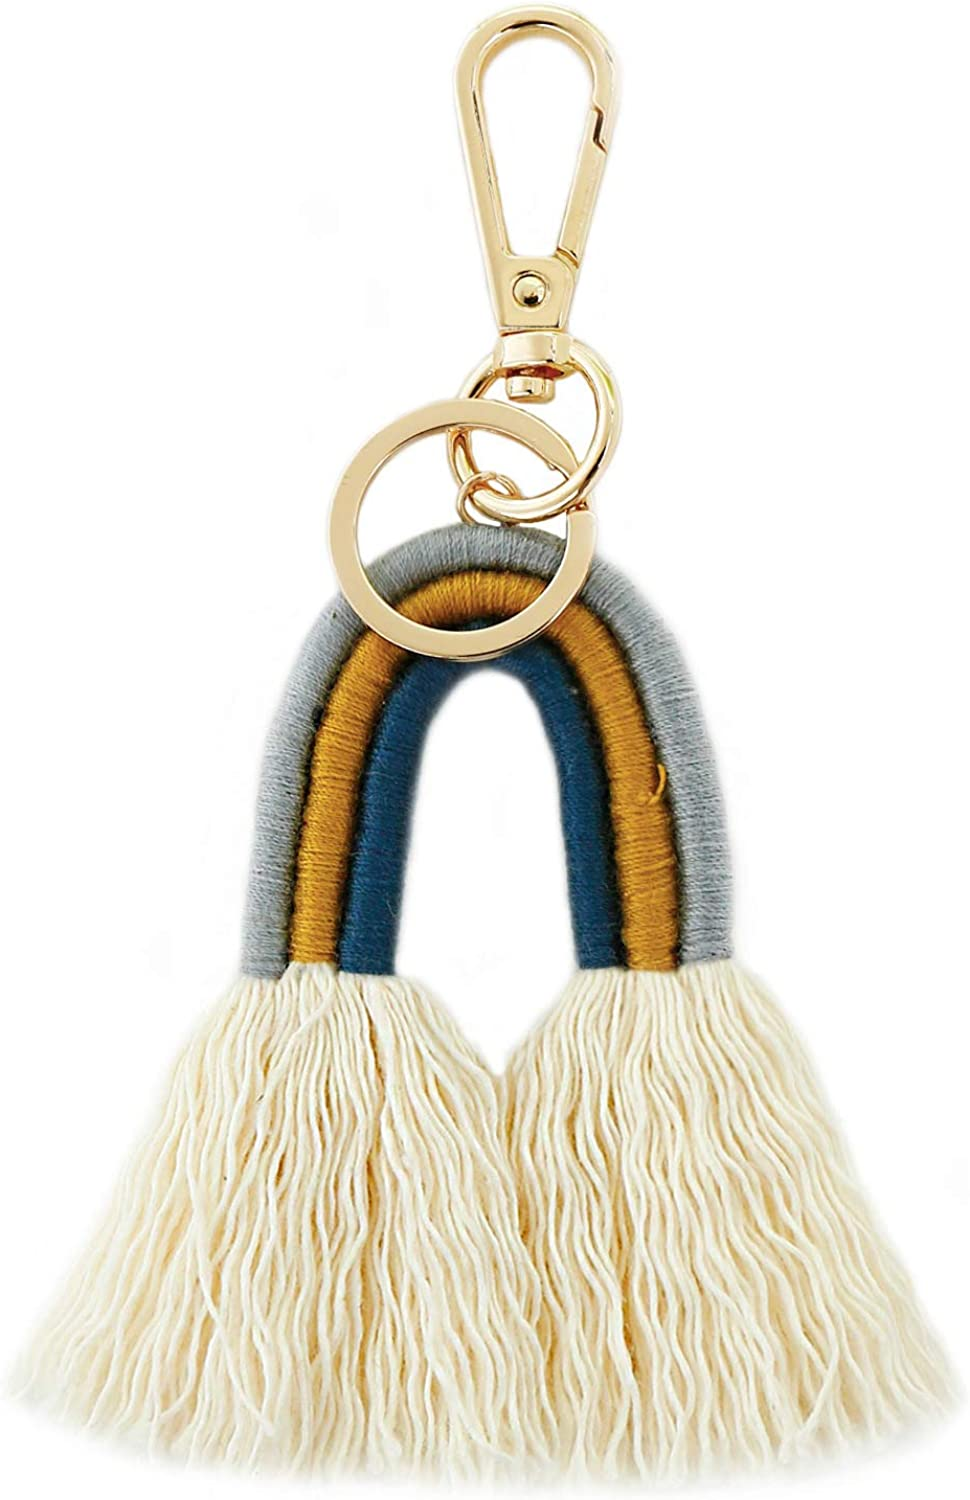 JIUZUI Pagoda Tassel Key Chain Straps For Hanging Decoration Assorted Colors,Beige